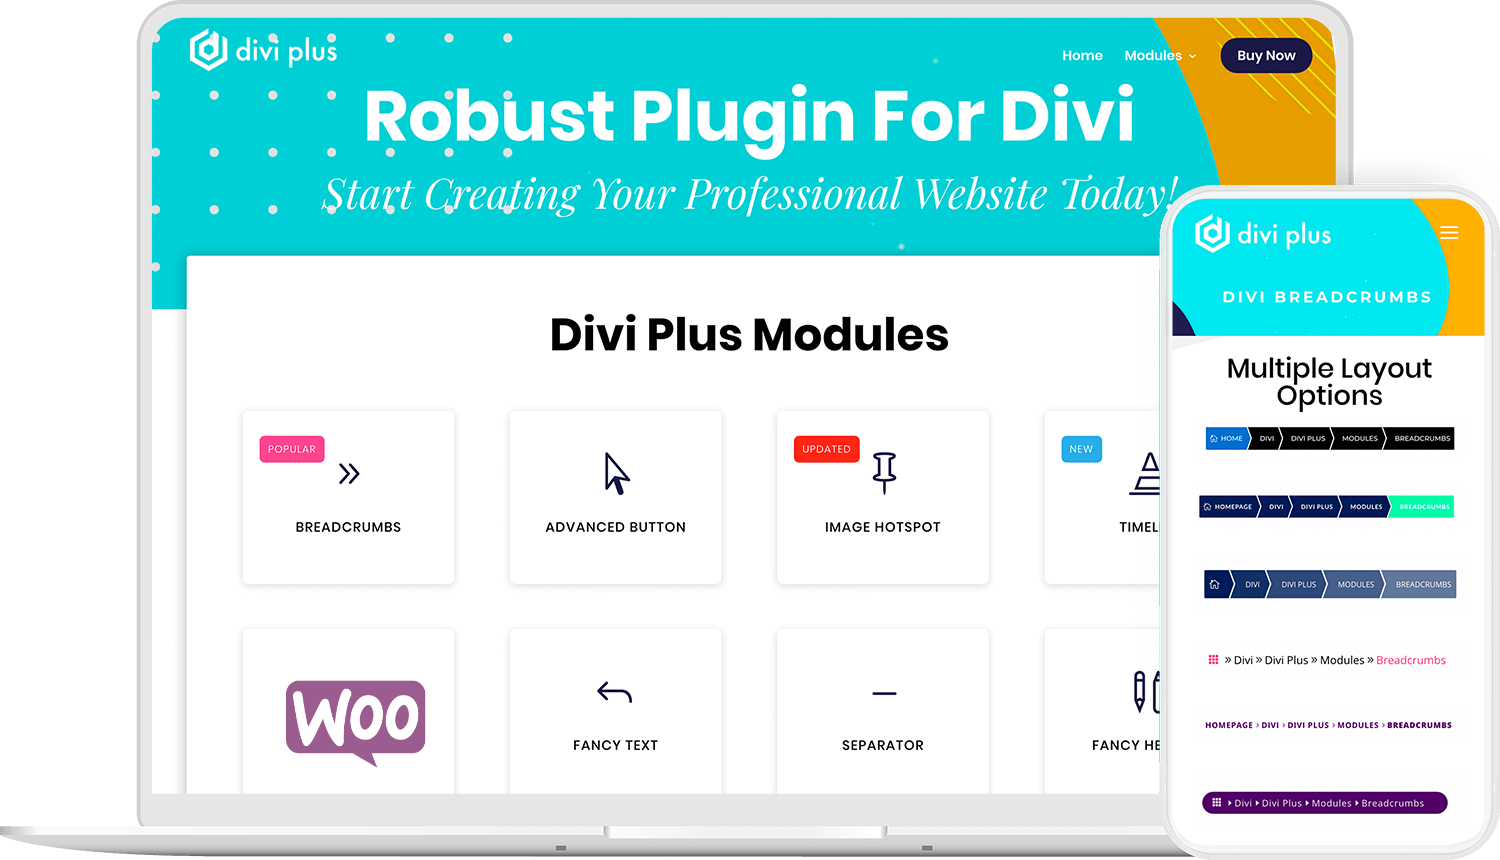 Divi Blog Extras is a popular Divi category layout plugin